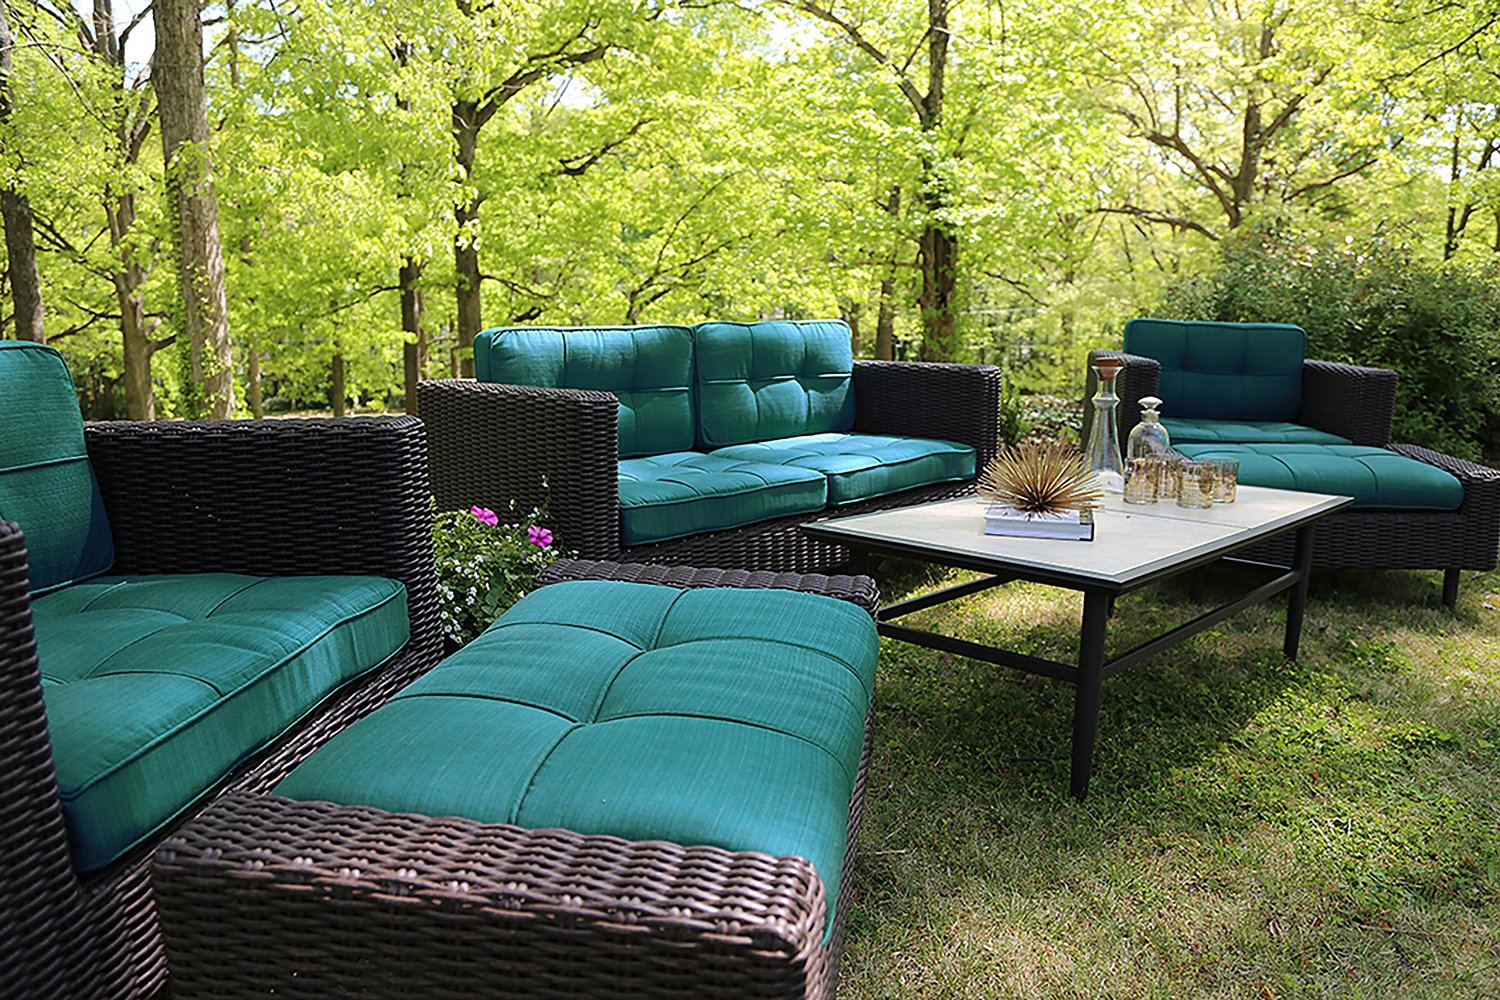 6pc Outdoor Patio Garden Wicker Furniture Rattan Sofa Set Sectional Grey Cushions Ae 6 Piece All Weather Wright Deep Seating